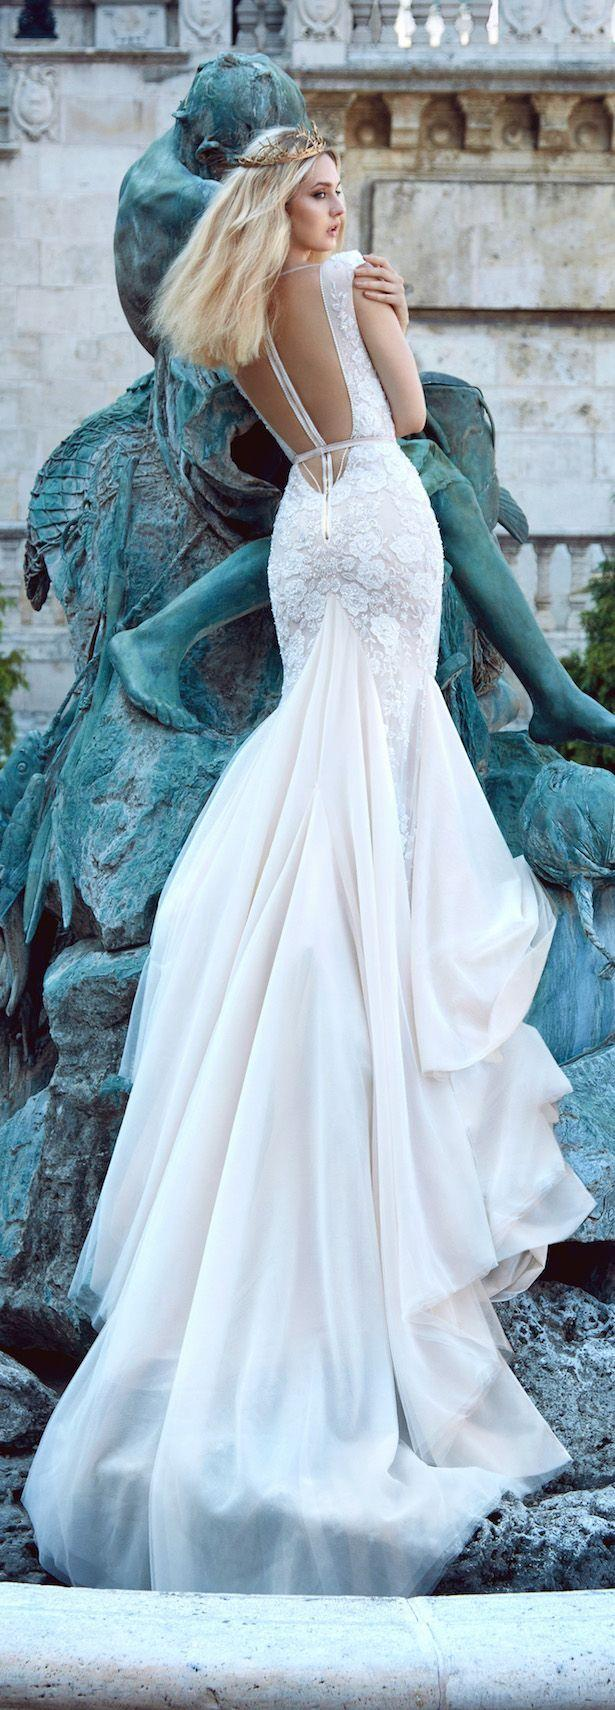 Wedding - Wedding-dresses-paradise